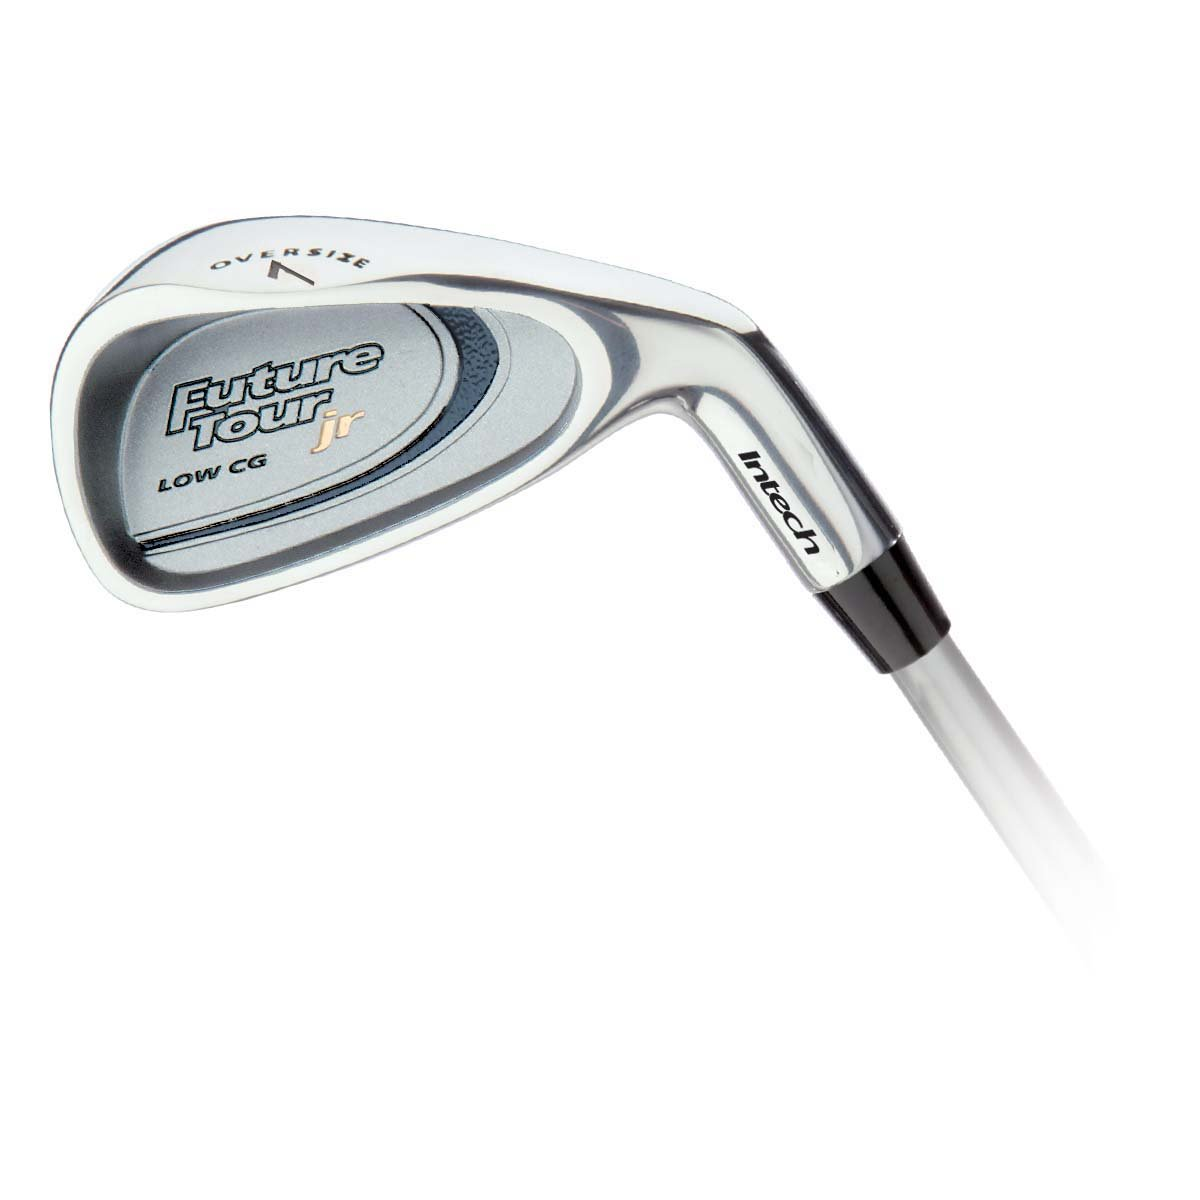 Intech Future Tour Pee Wee 7 Iron Right-Handed Composite Shaft Age 5 And Under